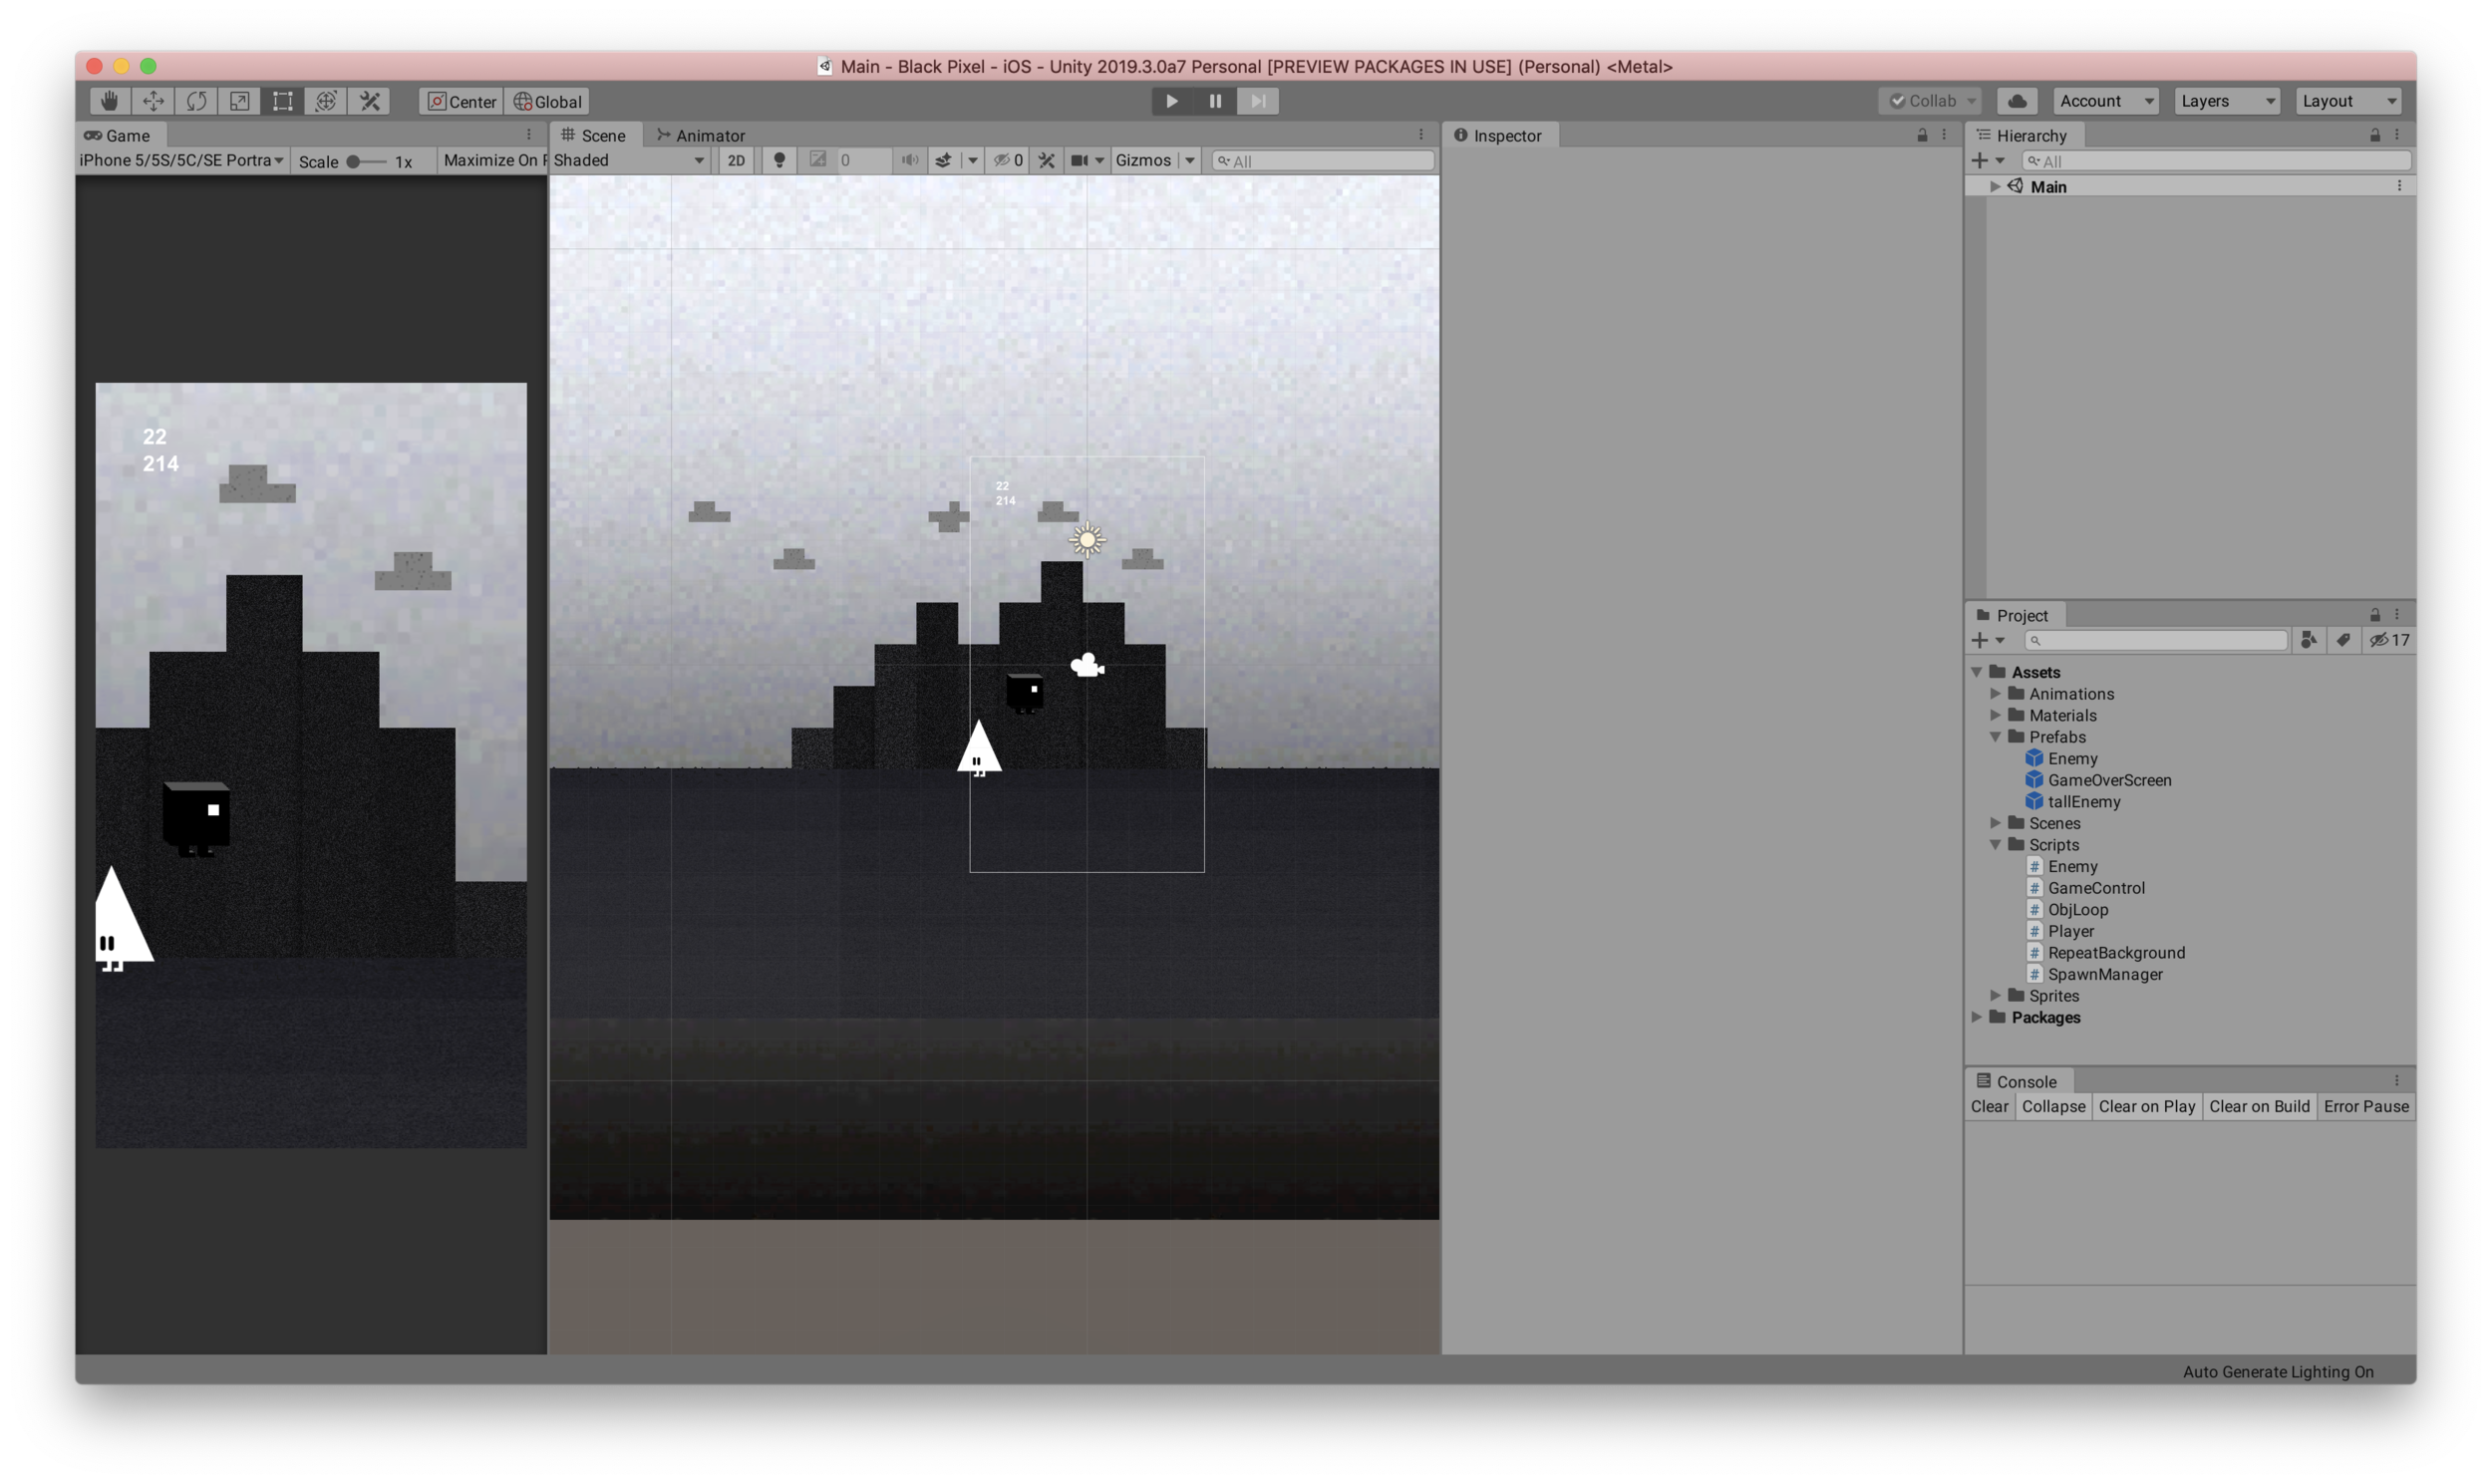 A screengrab of the game prototype built in Unity